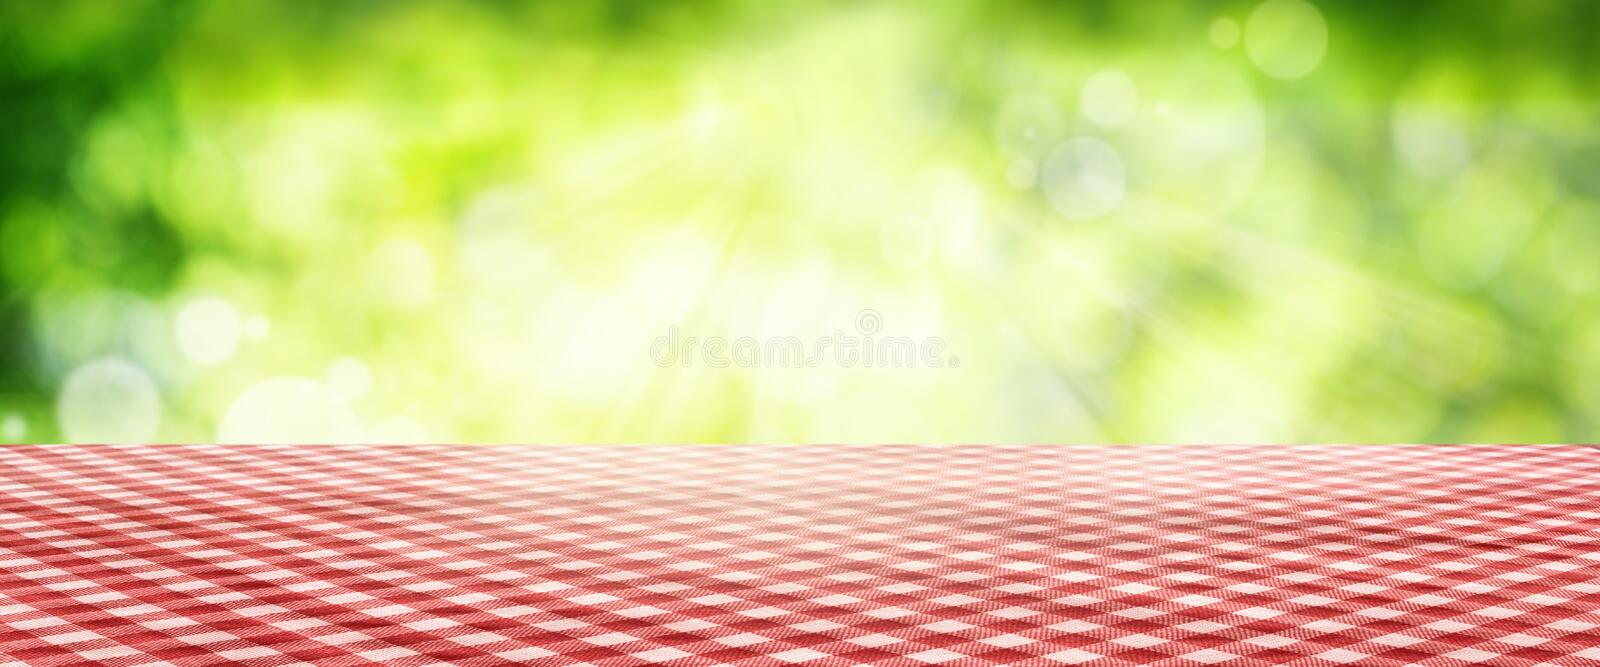 Tablecloth with spring background. Luminous green spring background with a red checkered Tablecloth for a bavarian concept royalty free stock images